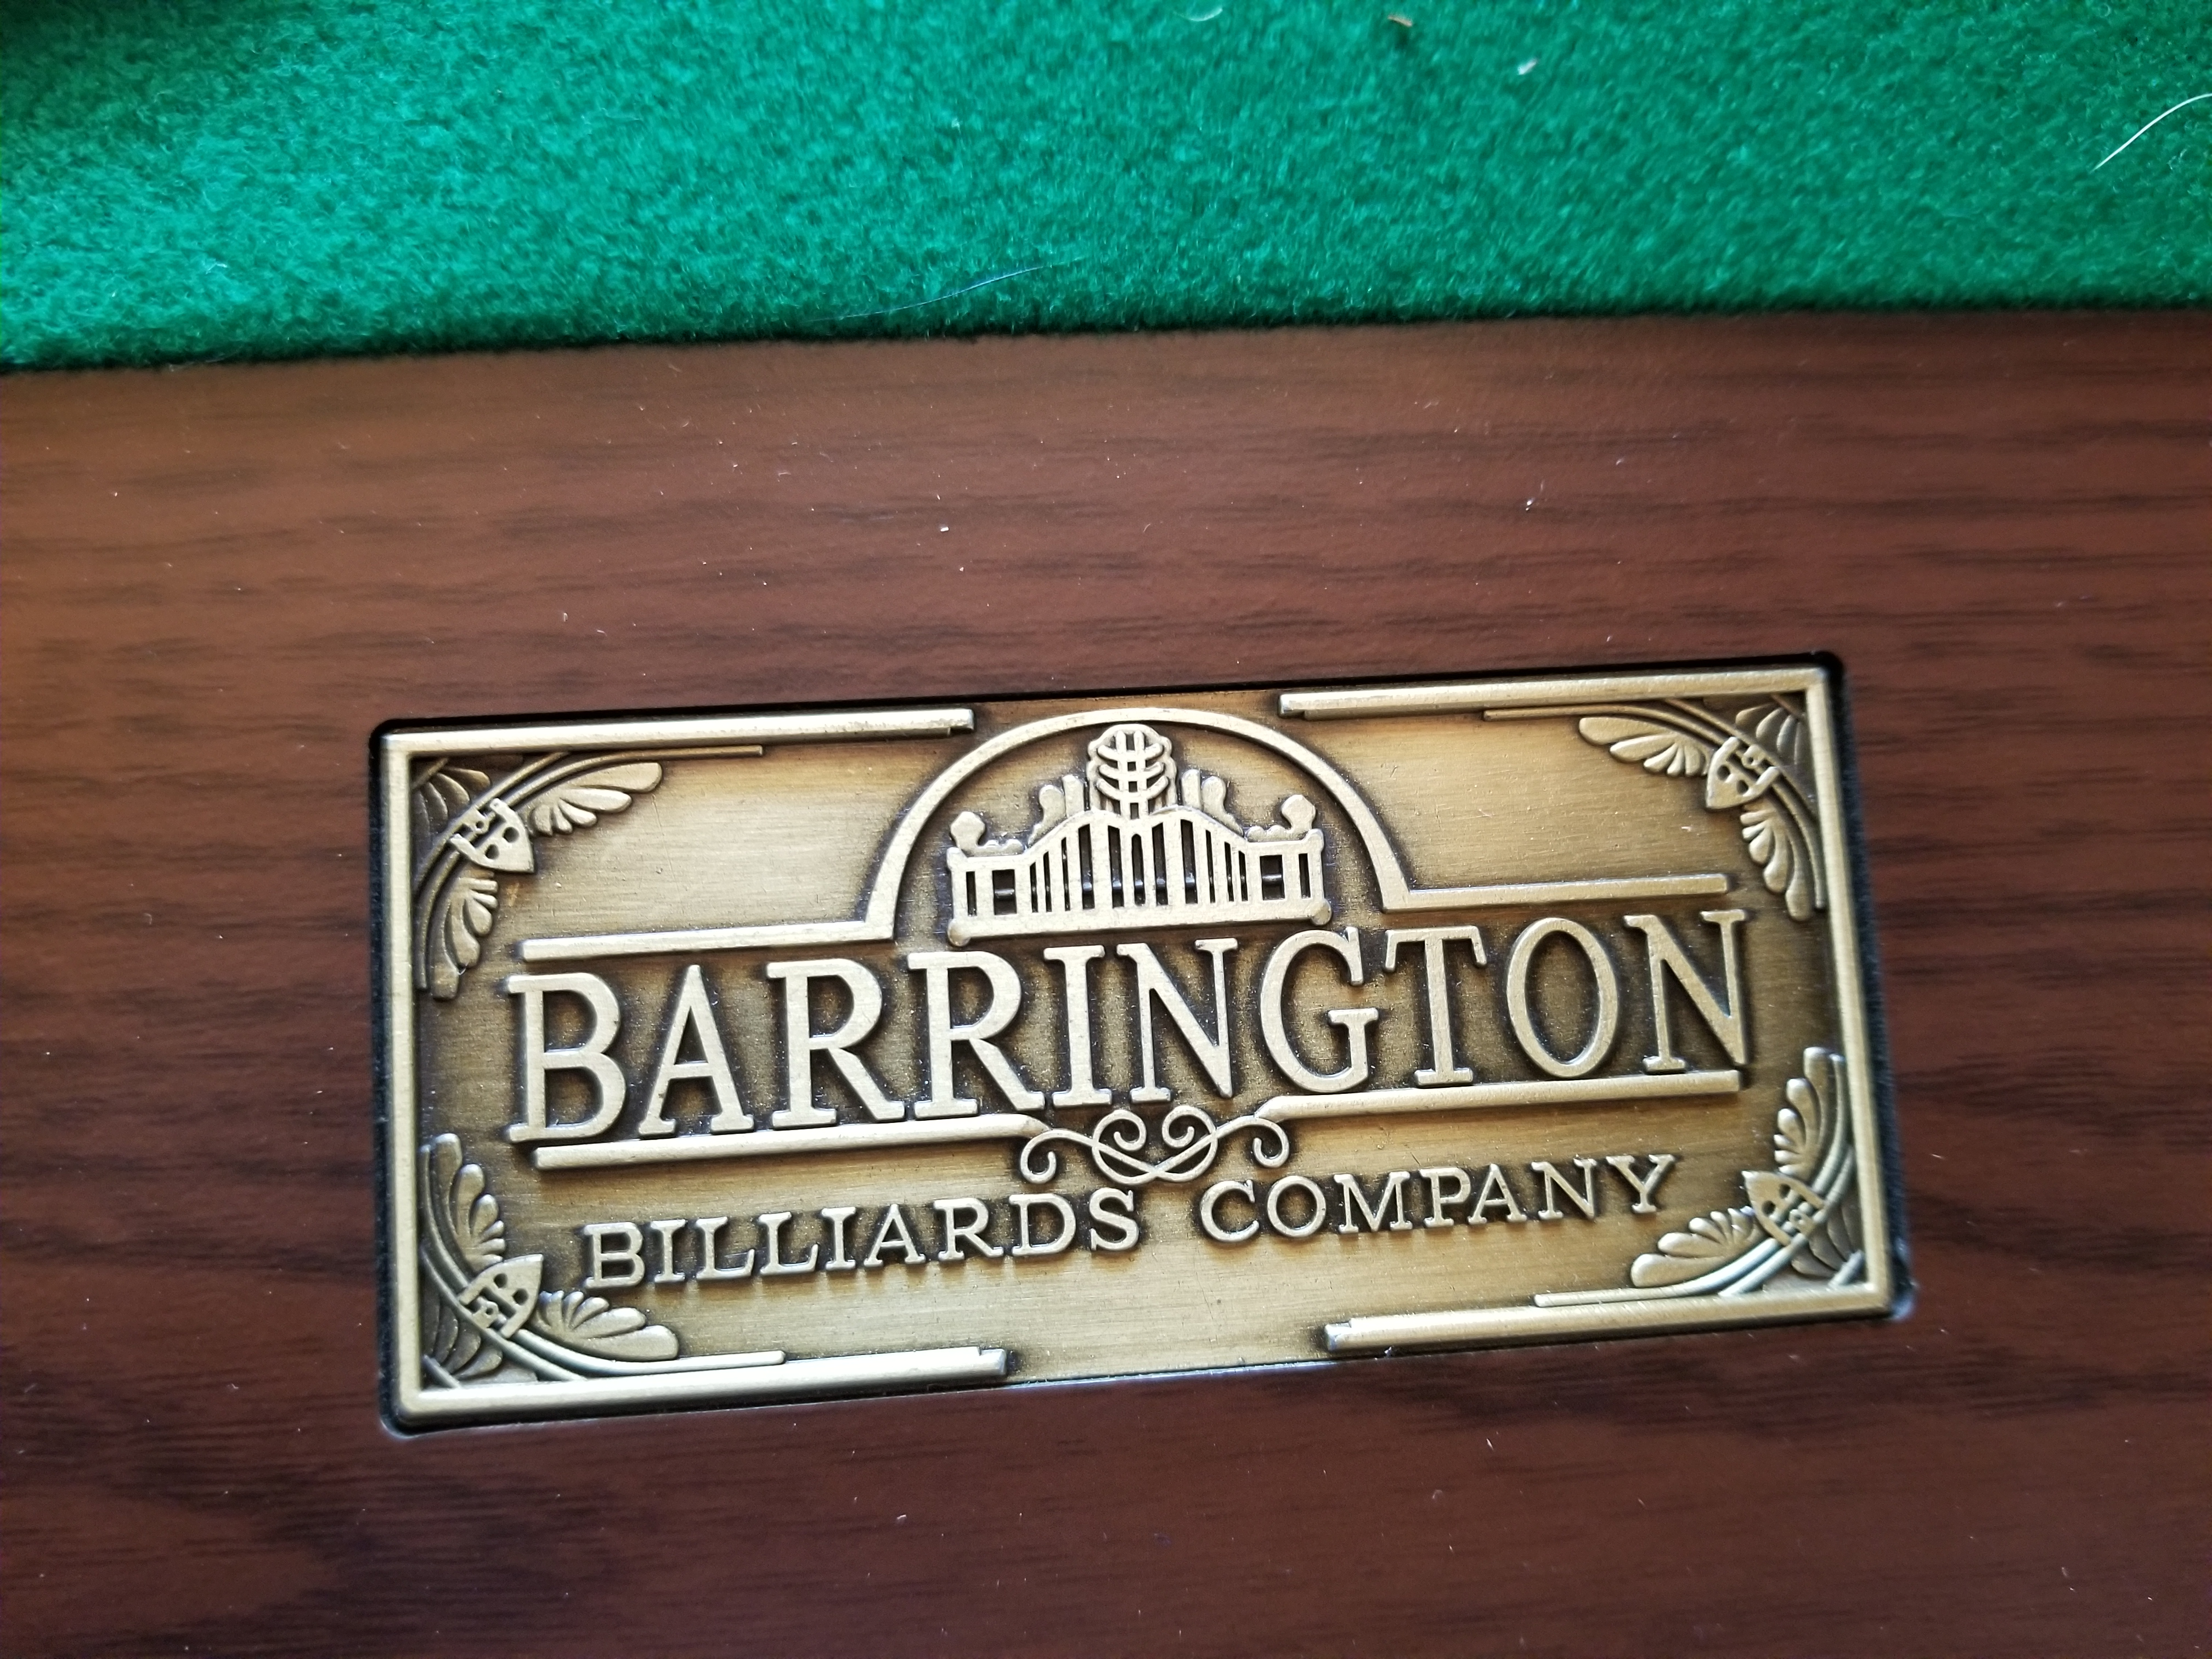 Barrington 8 ft. Pool Table - Includes 6 cues and maintenance set!!